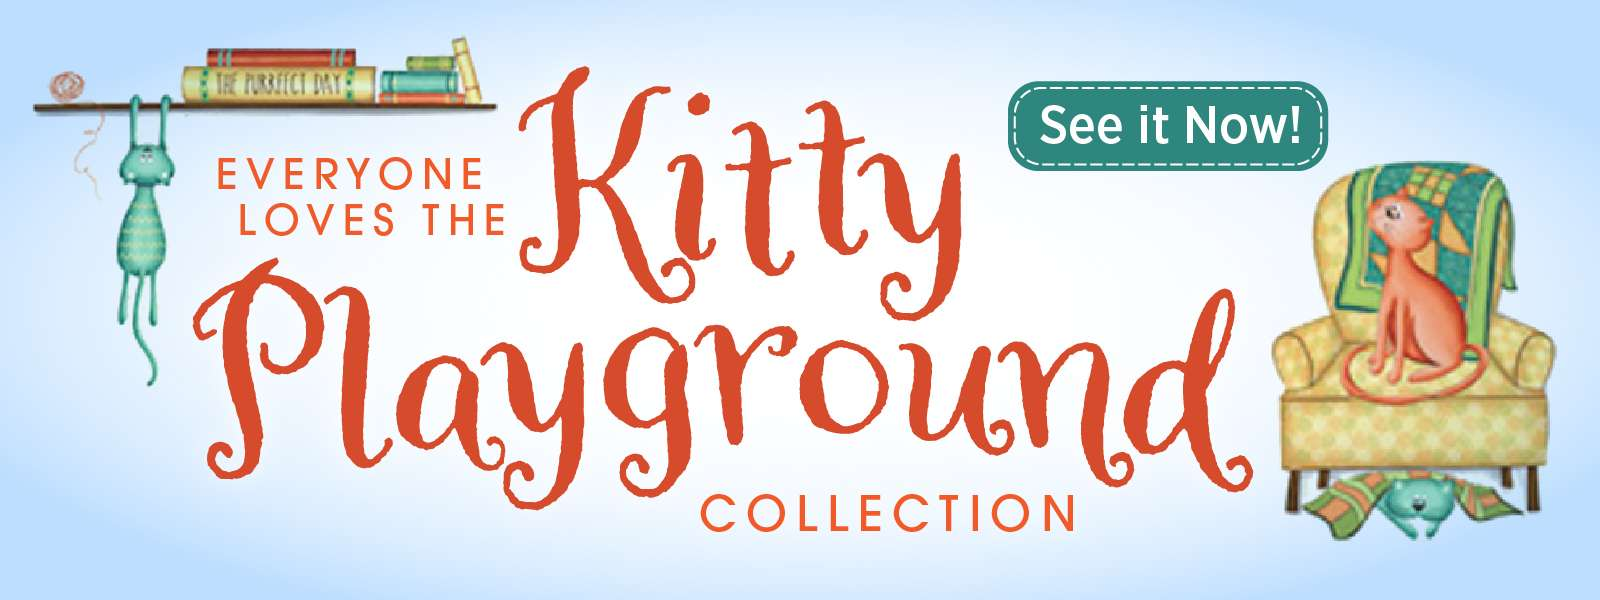 kitty playground fabric collection